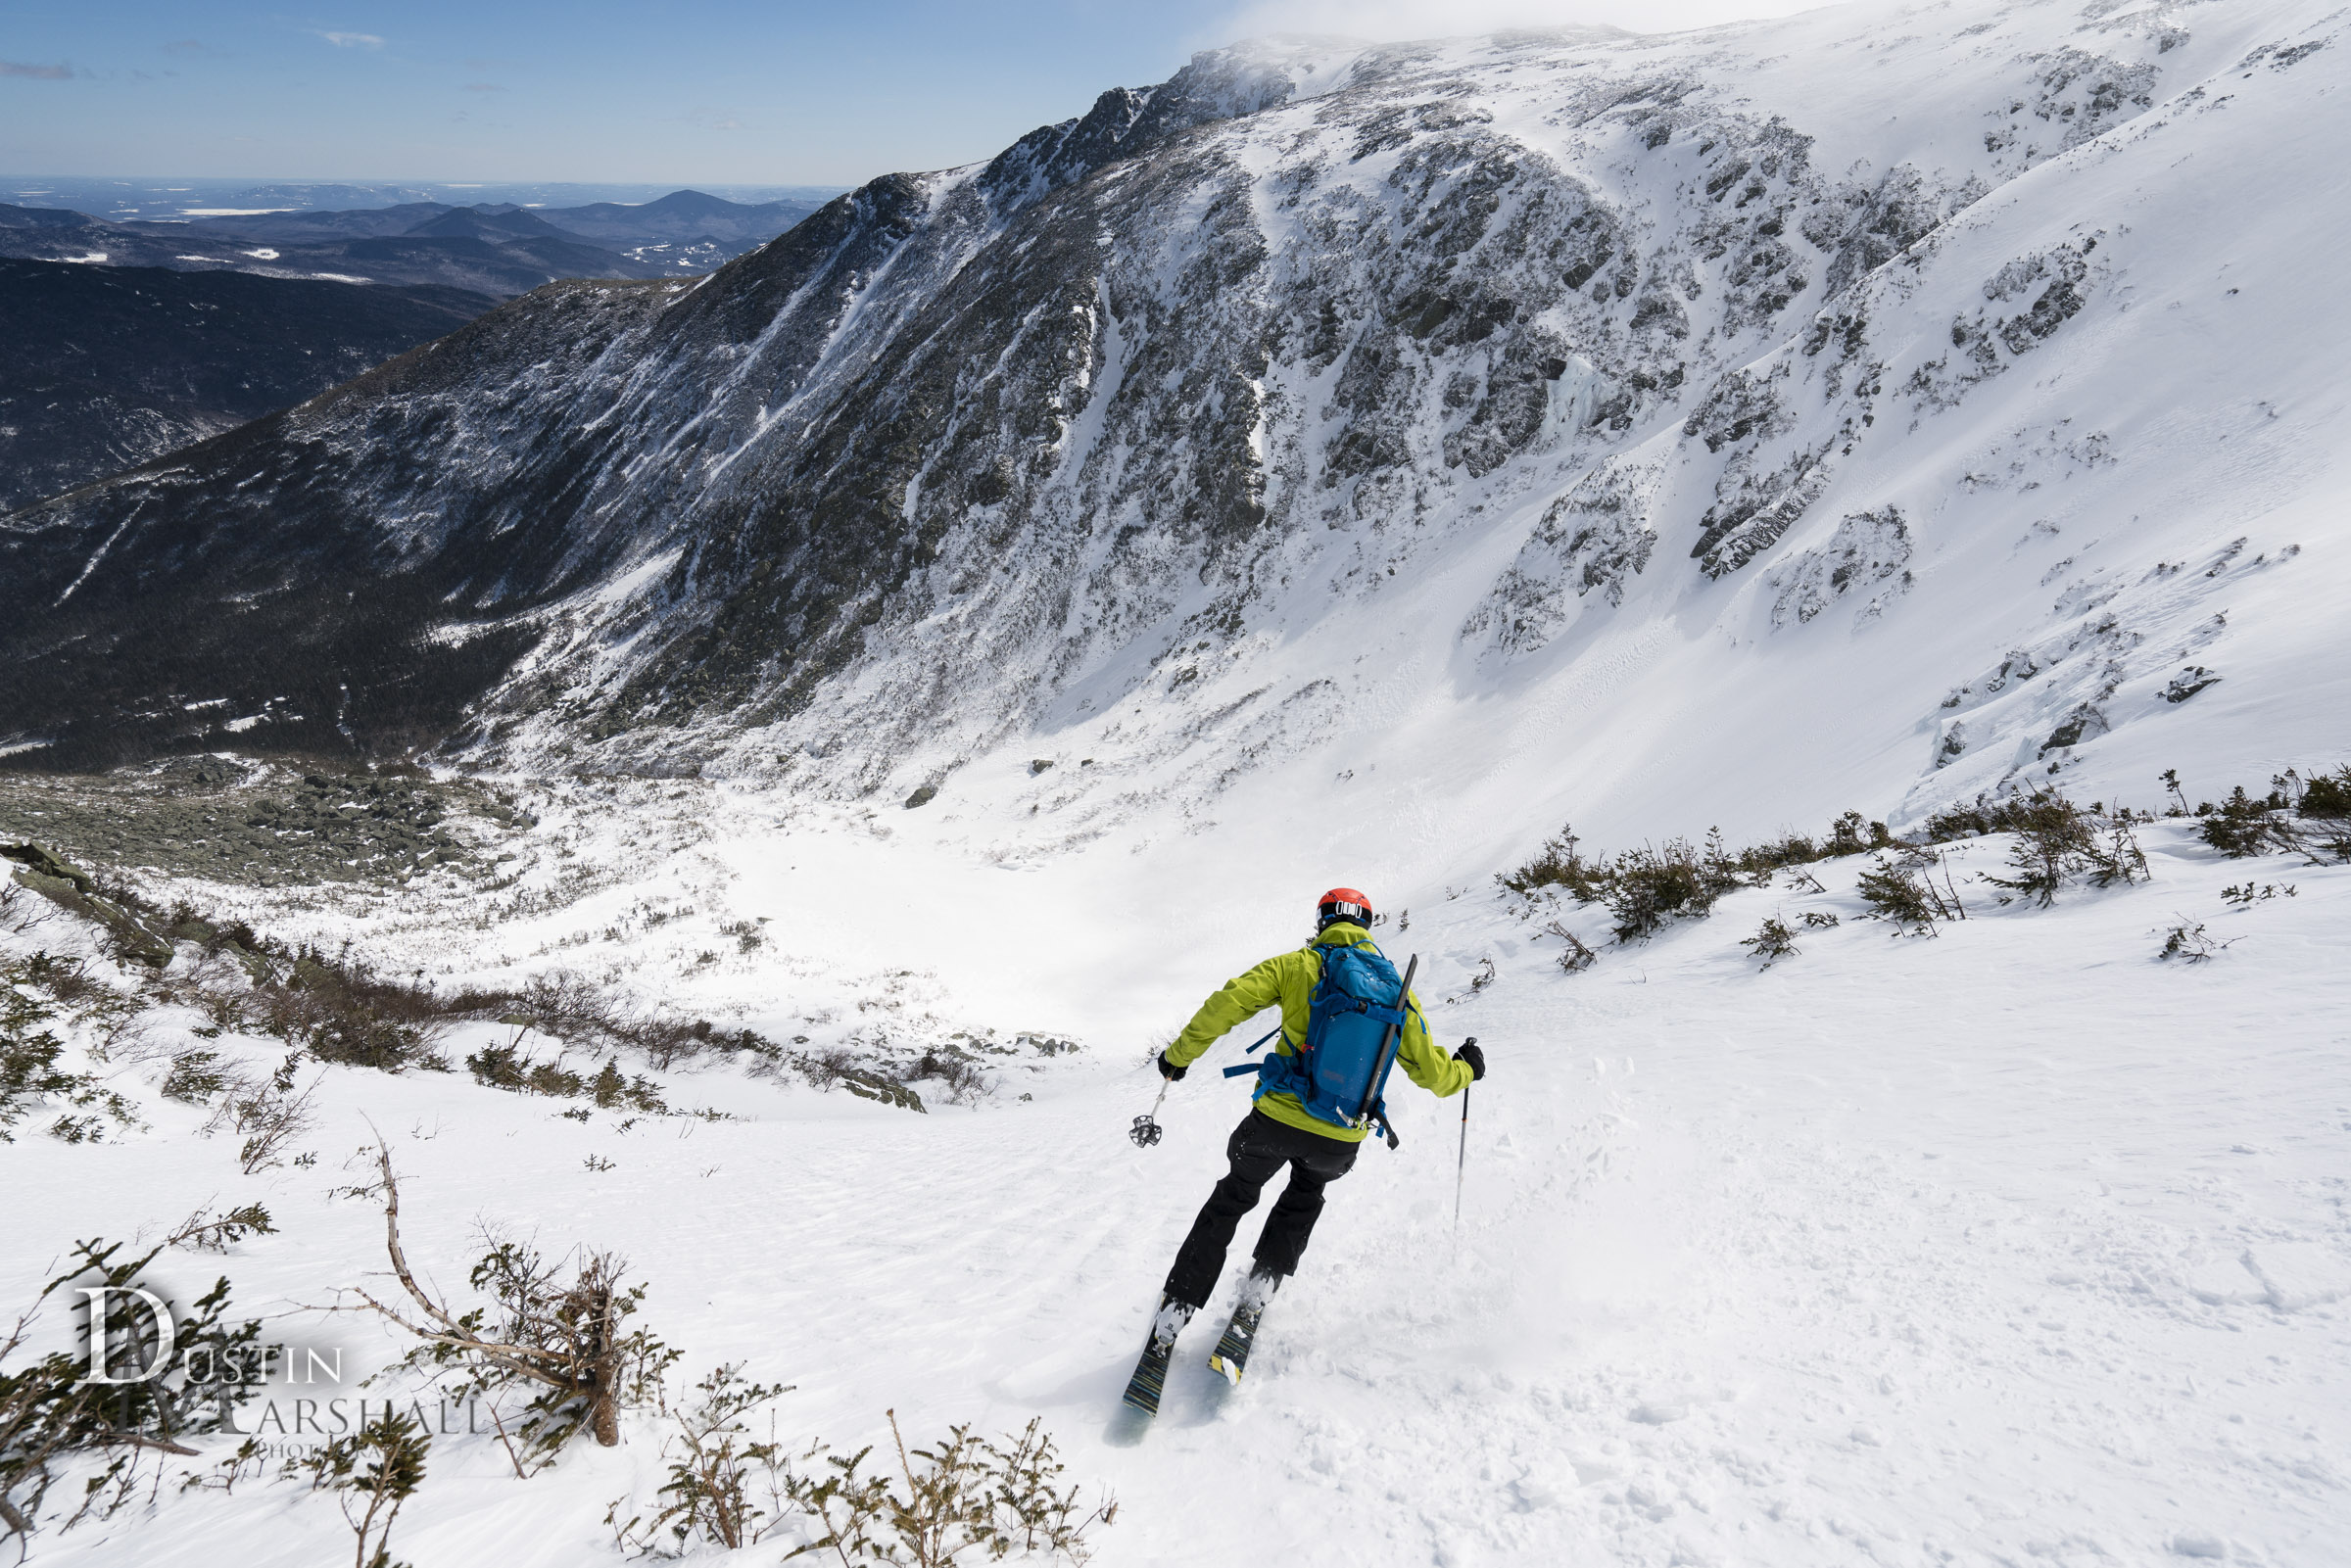 Jump turns on Sluice, Tuckerman Ravine